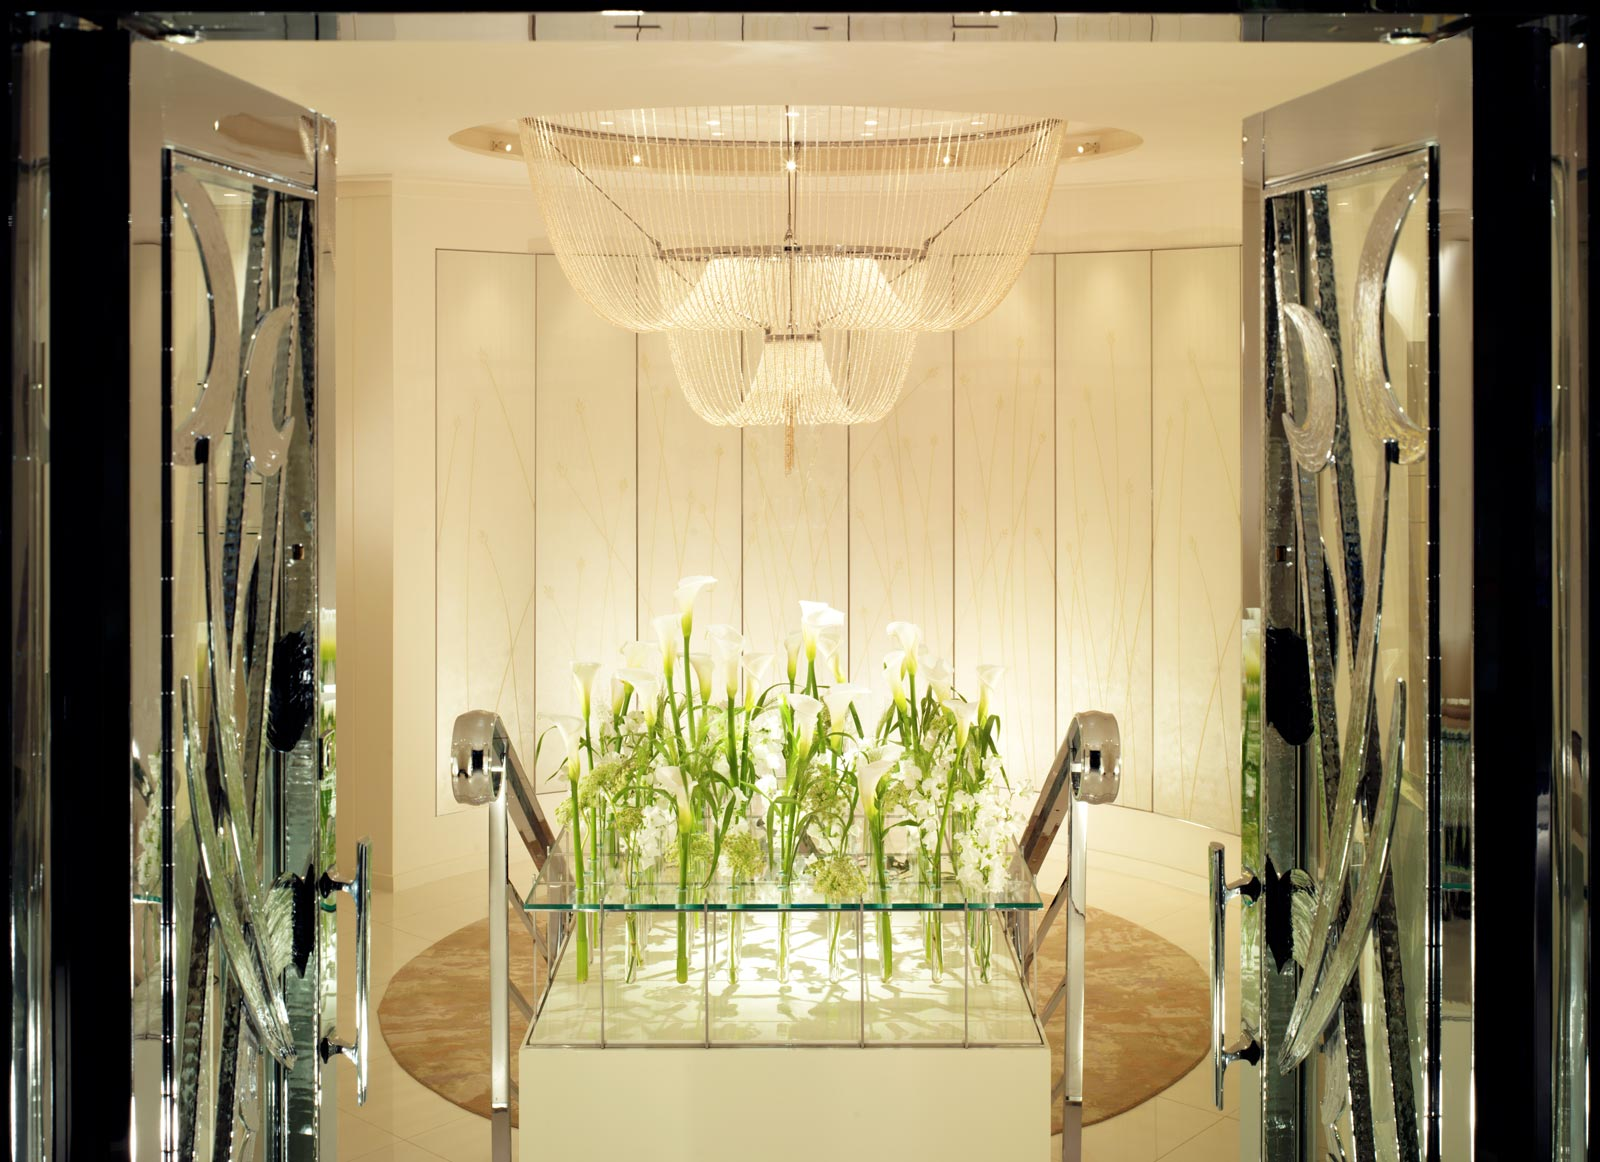 The beautiful chandelier in the Dorchester hotel Spa